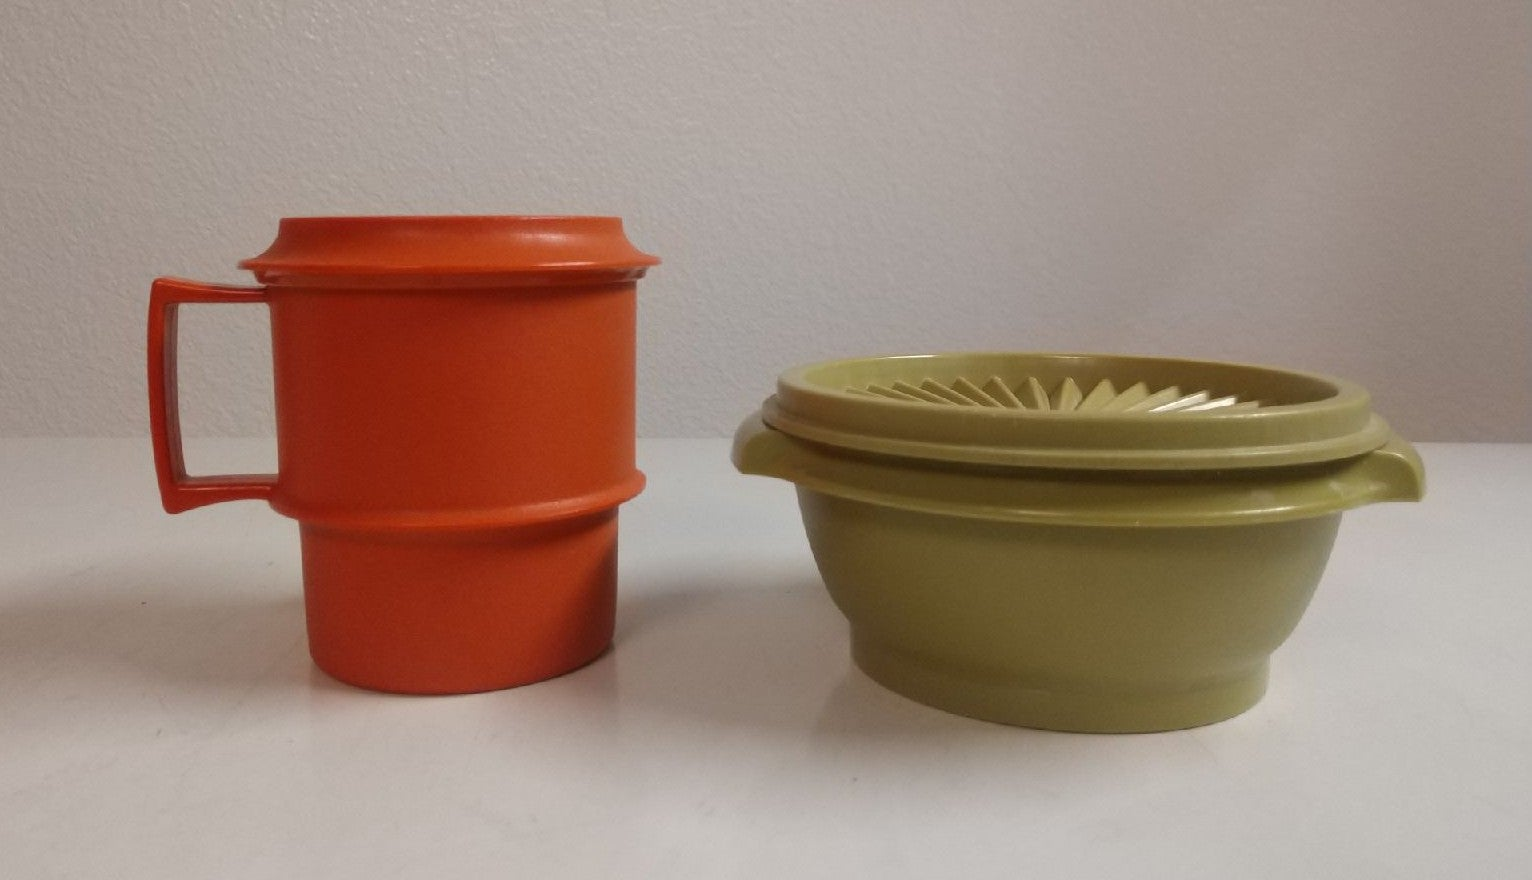 Tupperware Container and Cup